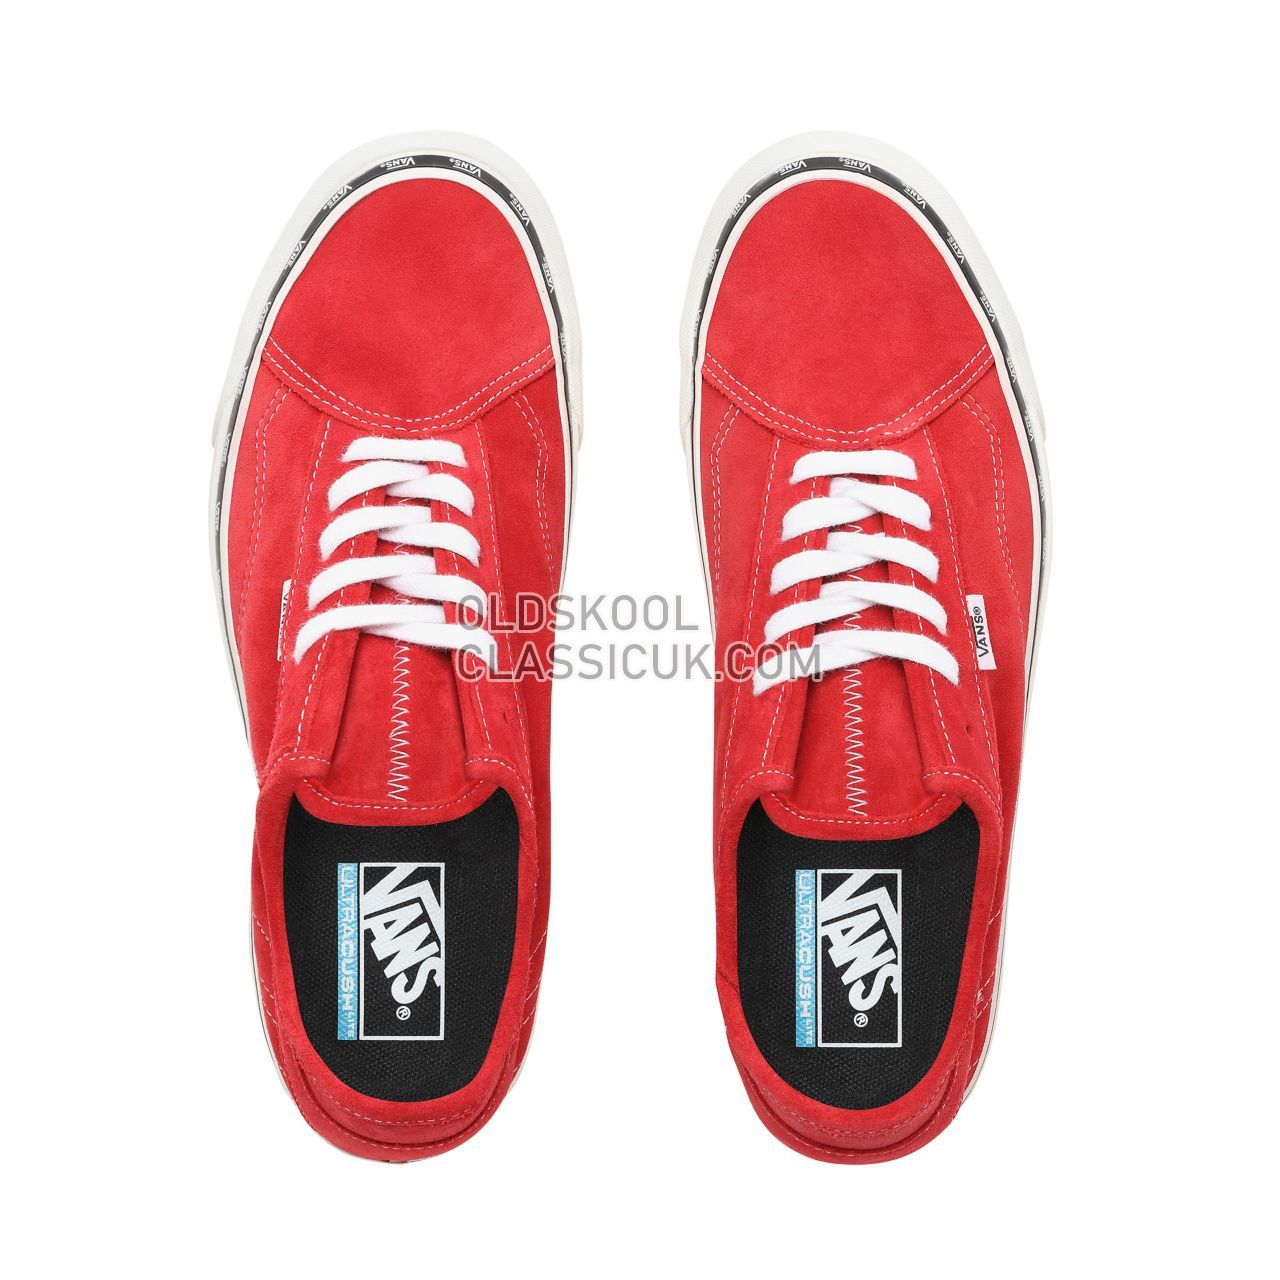 Vans New Issue Diamo Ni Sneakers Mens (New Issue) Tango RedTrue White VN0A3TKDVOG Shoes £58